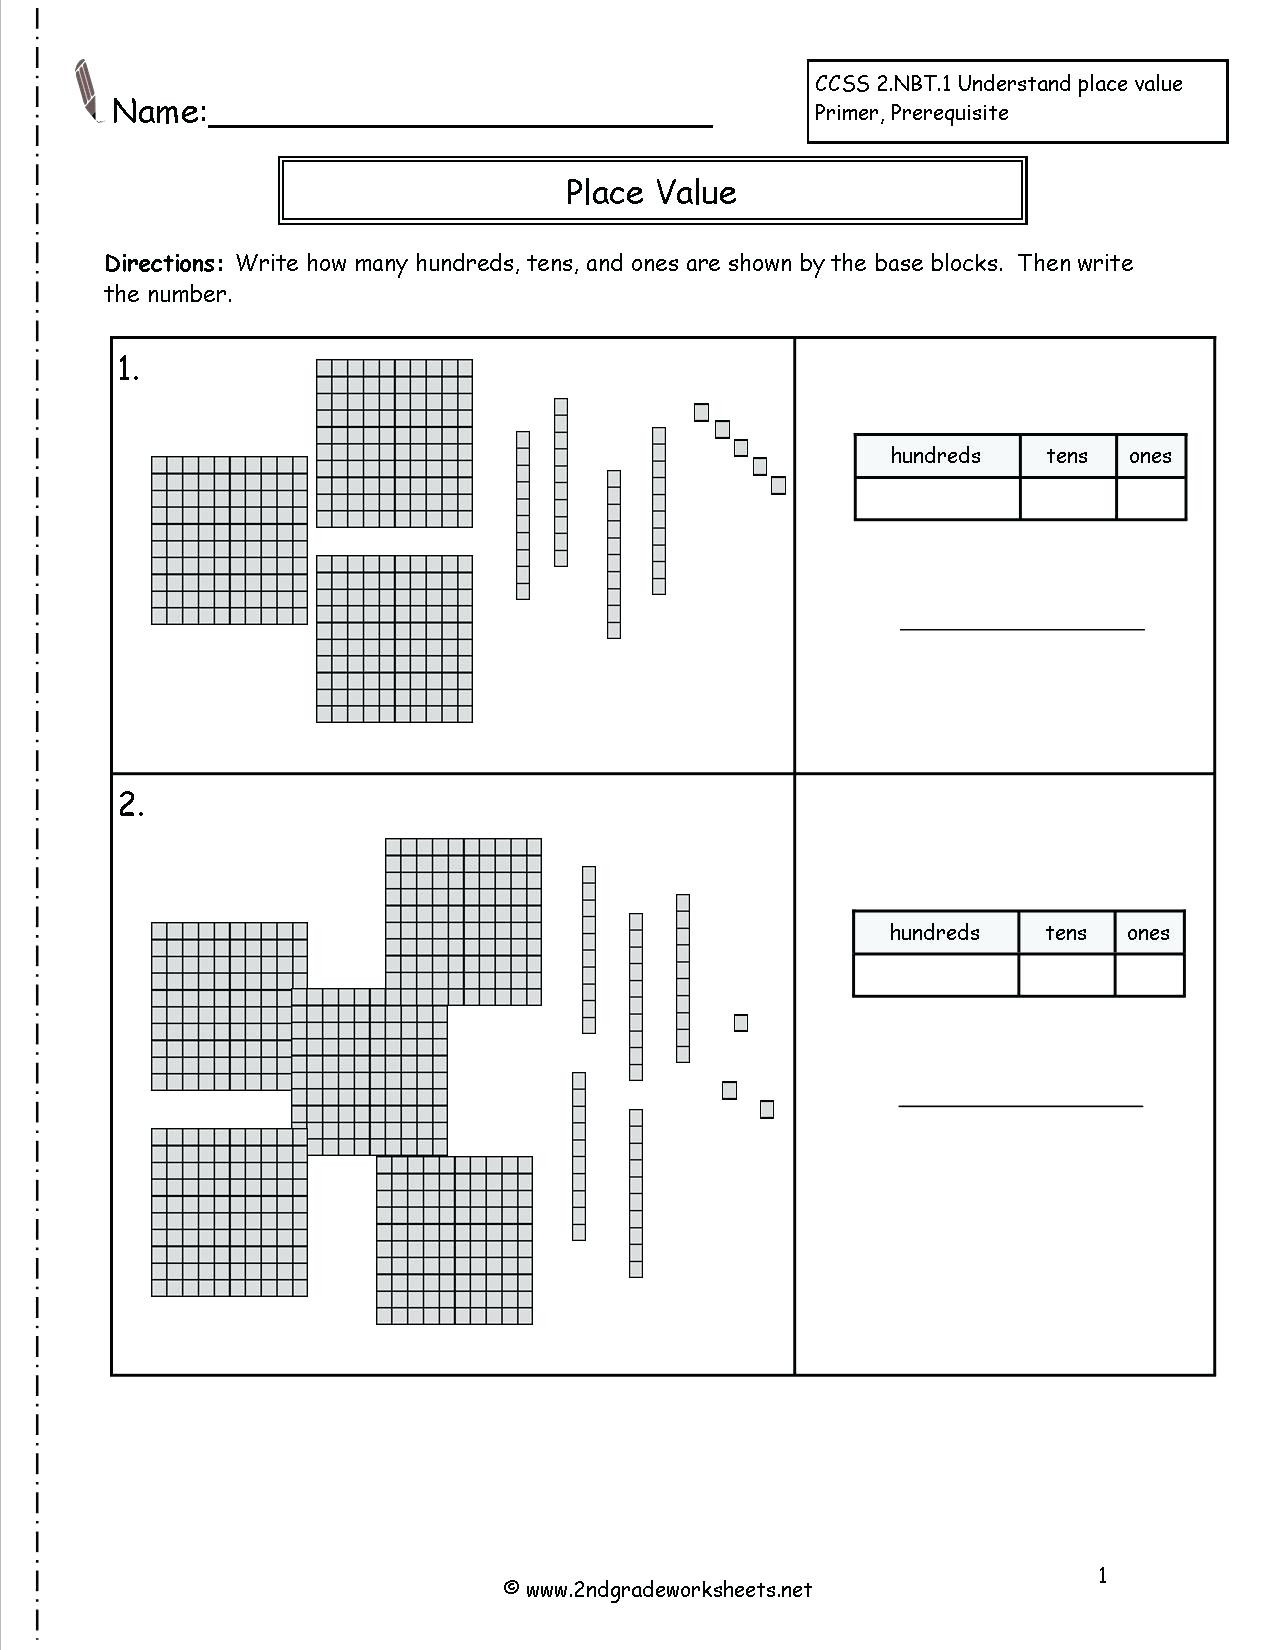 Place Value Worksheet Printable